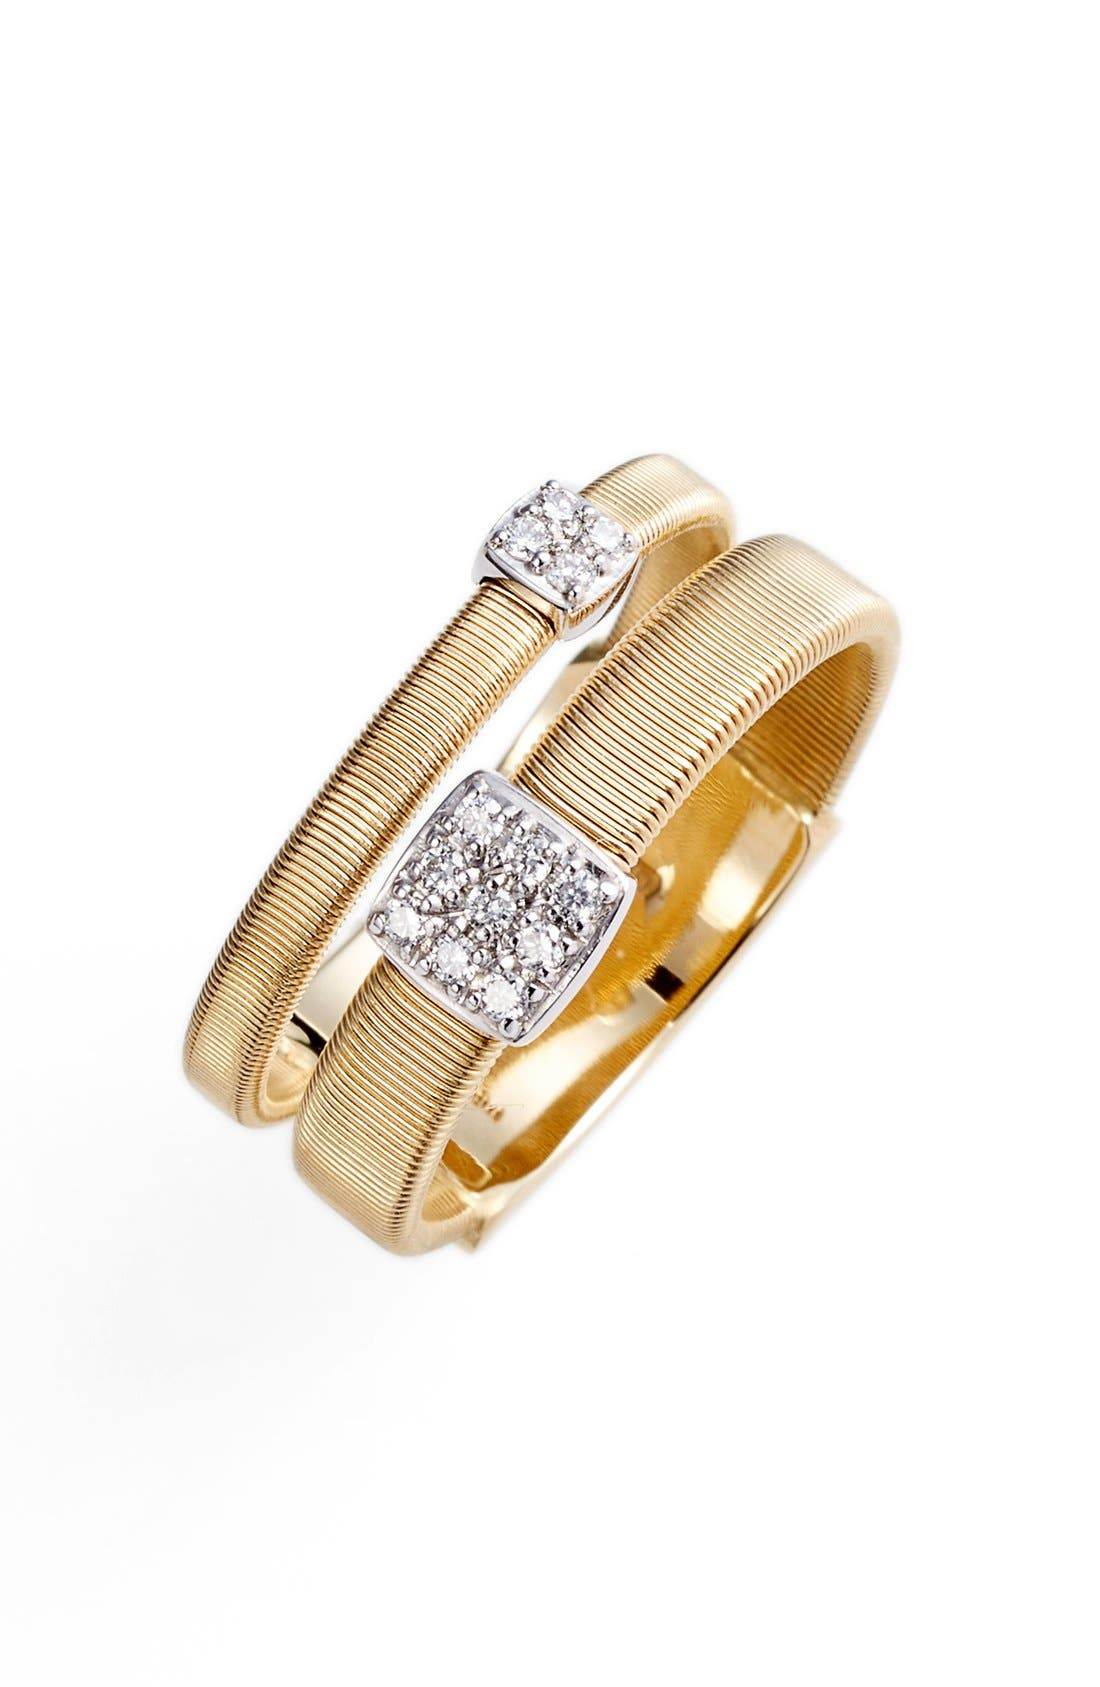 Main Image - Marco Bicego Masai Two Strand Diamond Ring